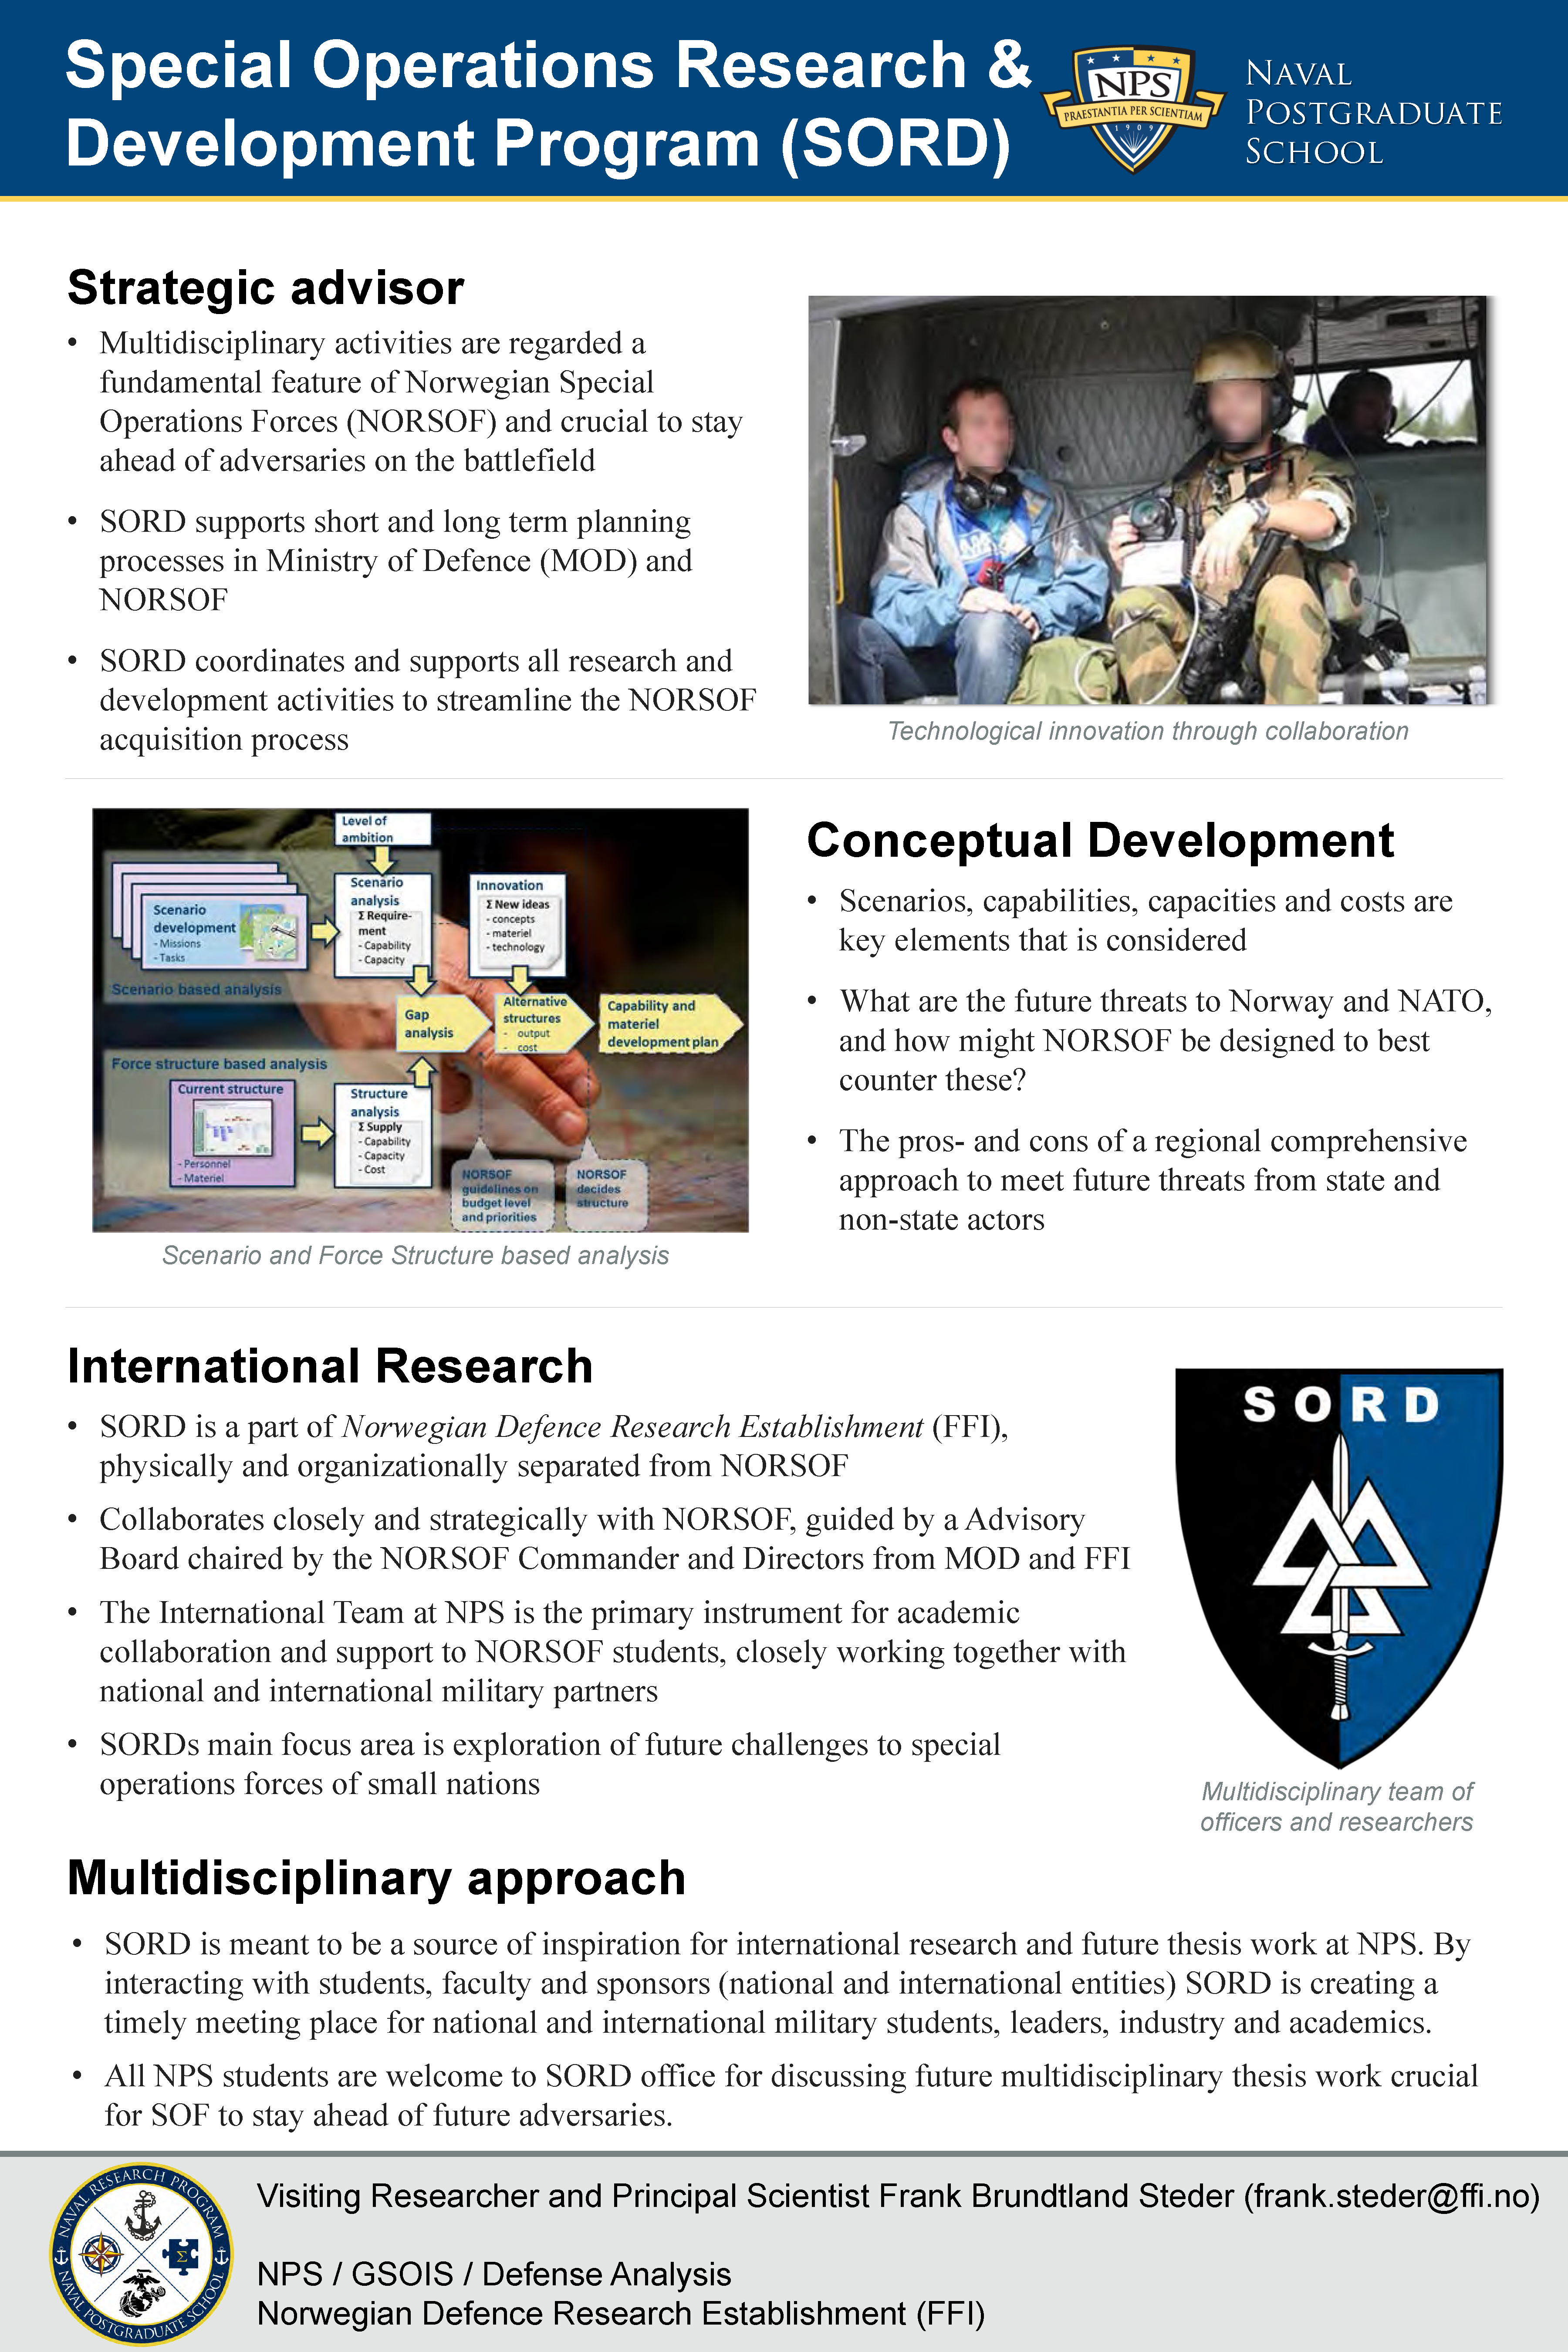 Special Operations Research & Development Program (SORD)